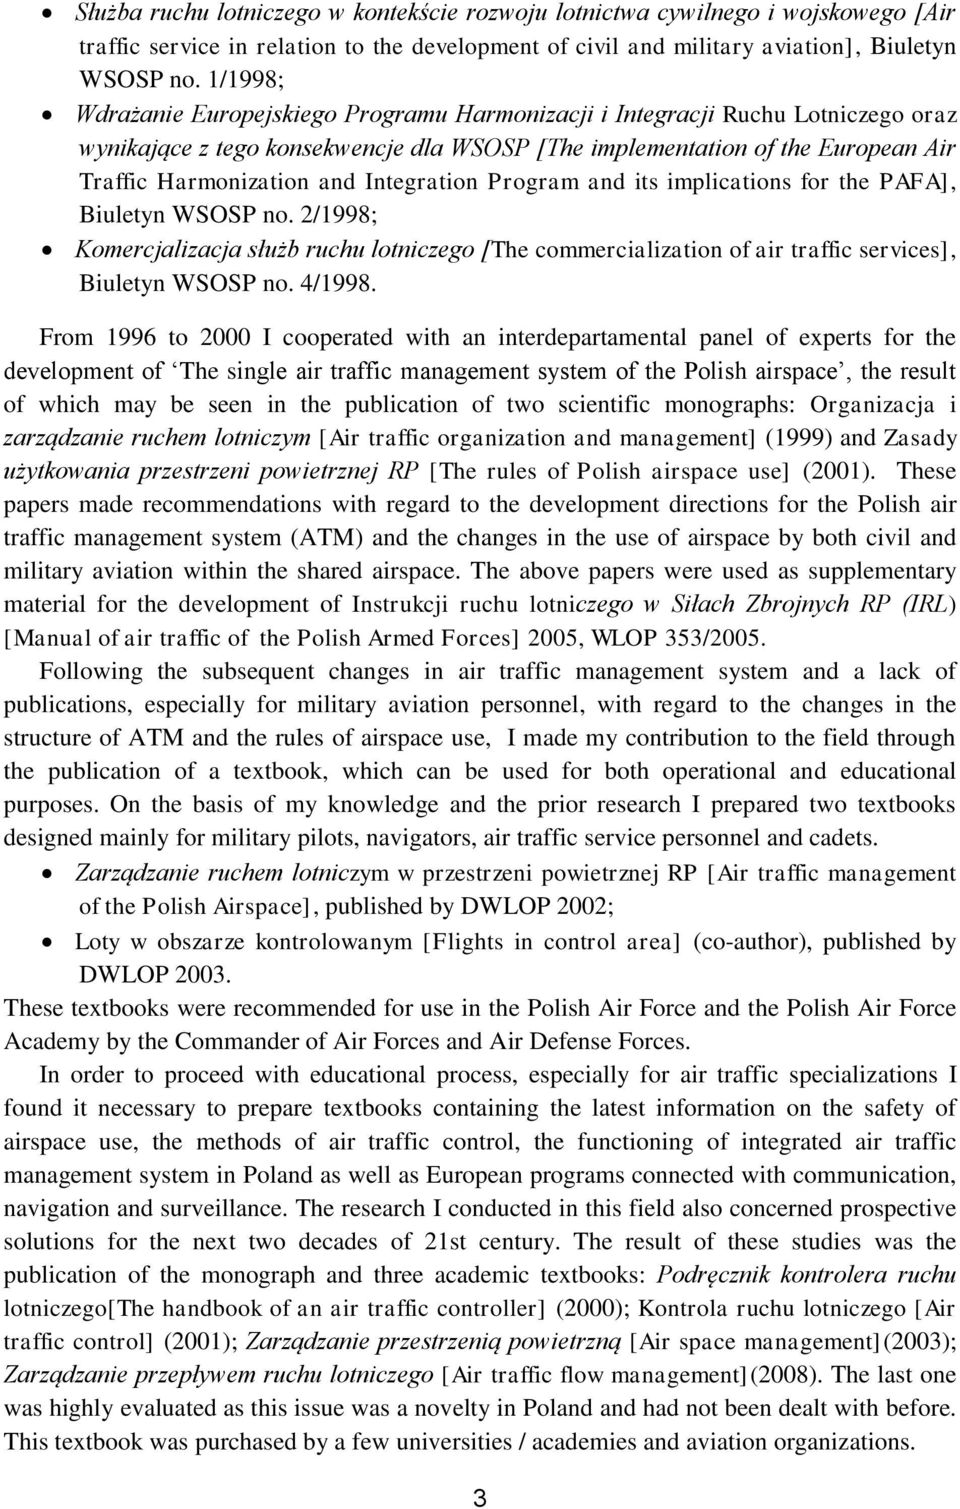 Integration Program and its implications for the PAFA], Biuletyn WSOSP no. 2/1998; Komercjalizacja służb ruchu lotniczego [The commercialization of air traffic services], Biuletyn WSOSP no. 4/1998.